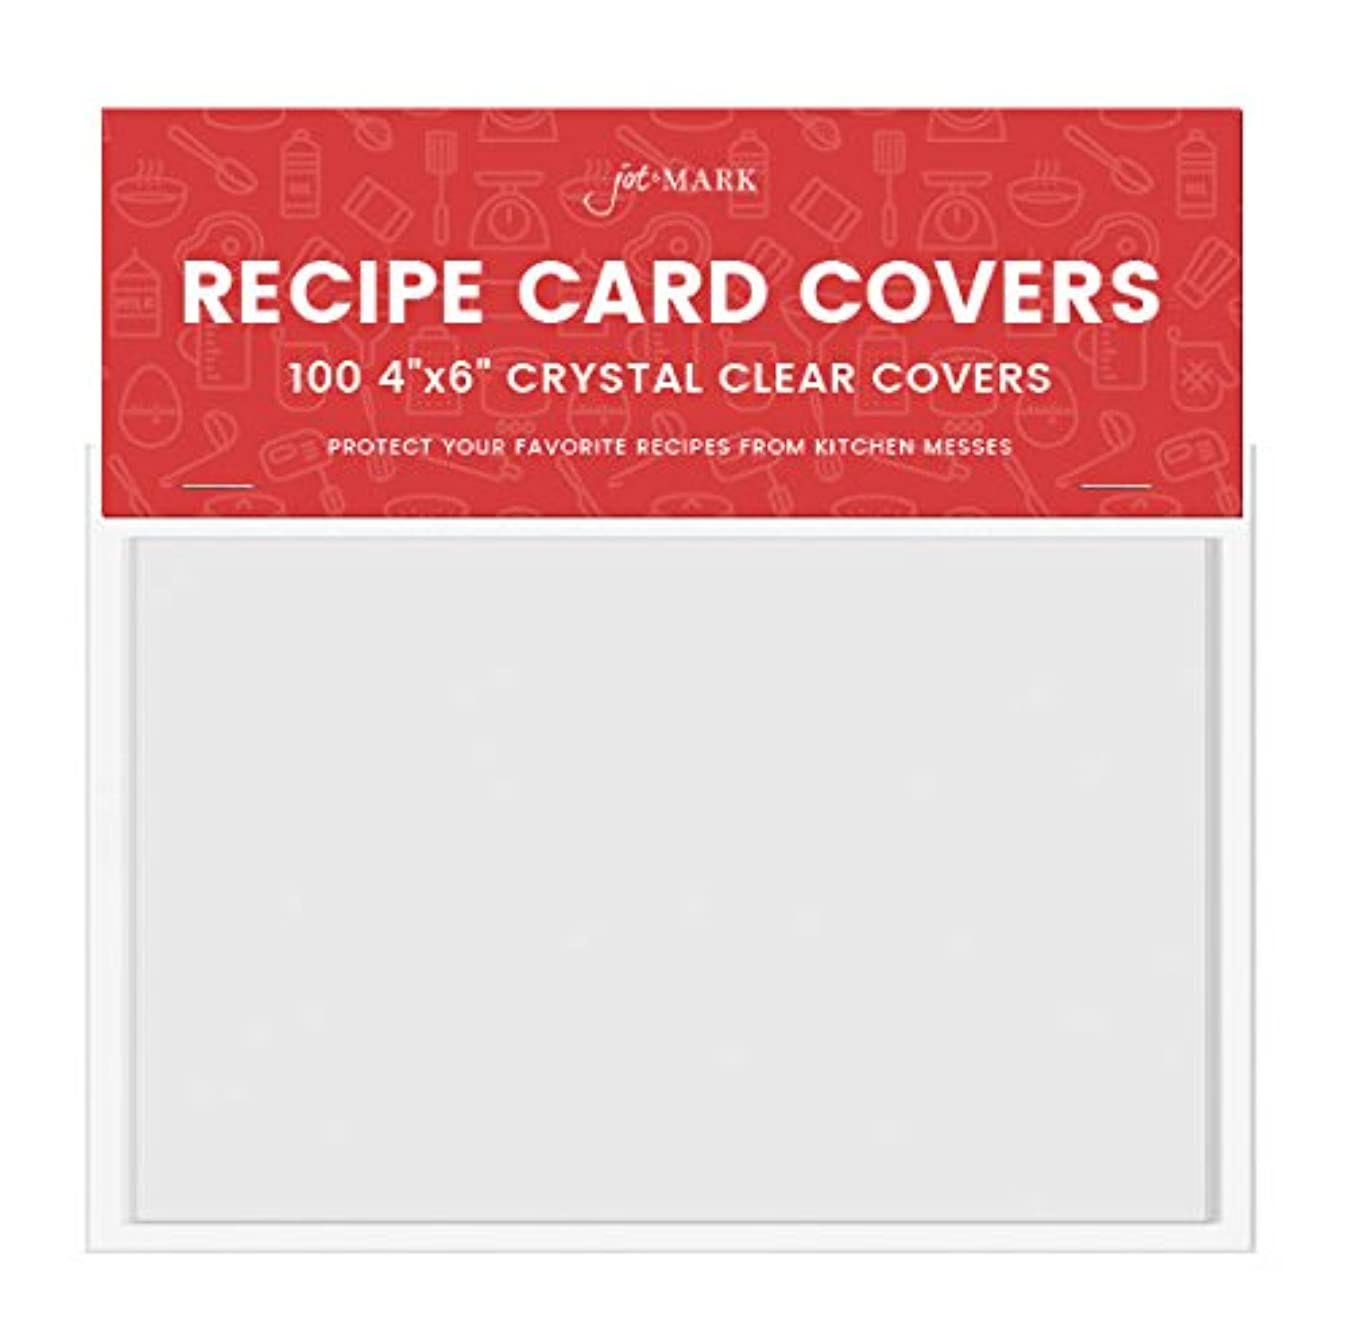 Jot & Mark 4x6 Recipe Card Protectors | Protect Your Recipes from Kitchen Messes | 100 Crystal Clear Covers Per Pack